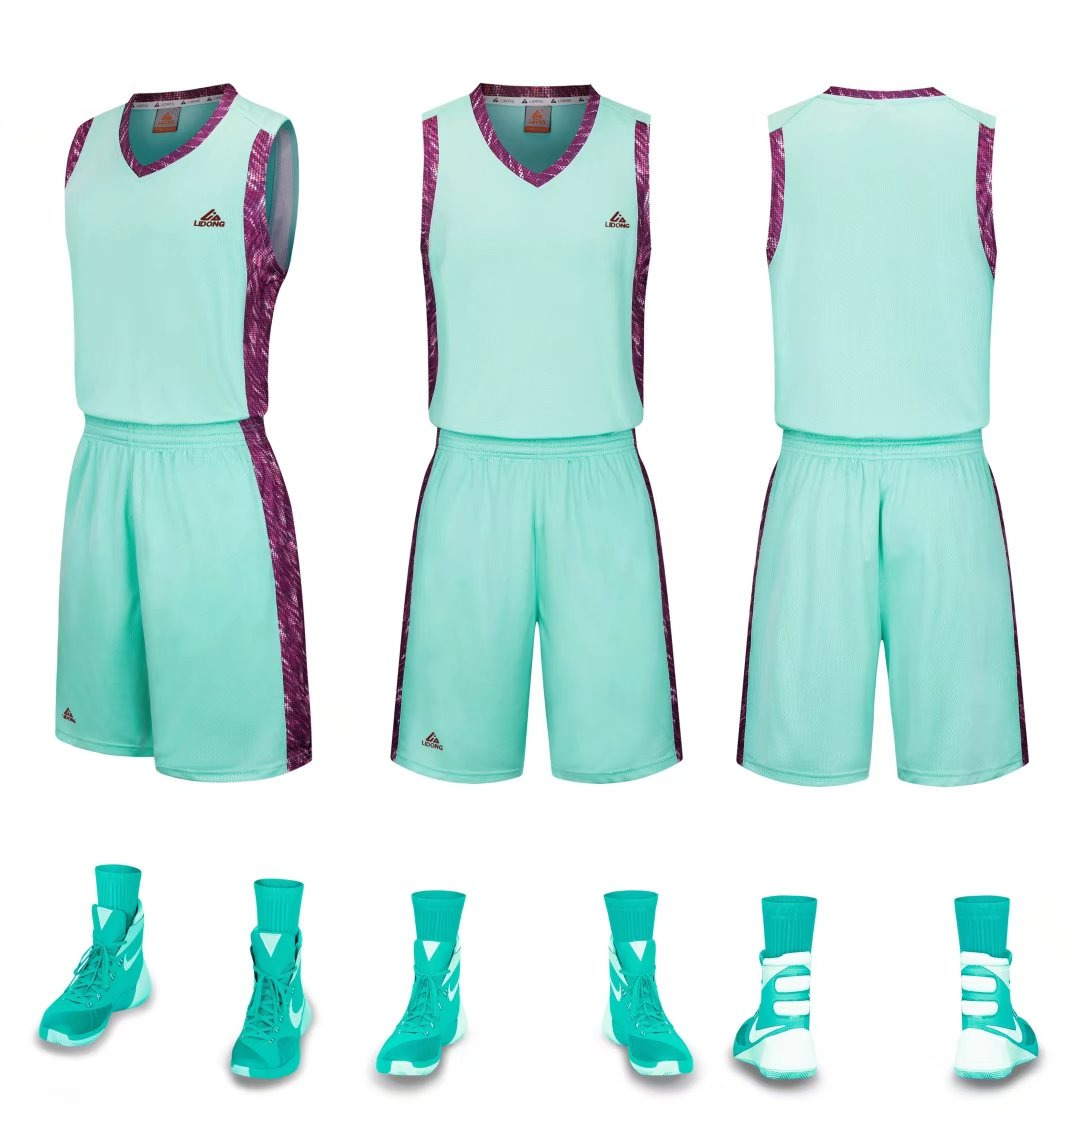 daf5bd4399b LiDong new basketball jerseys sport uniform with sleeveless shirts   shorts  Team trainning sets